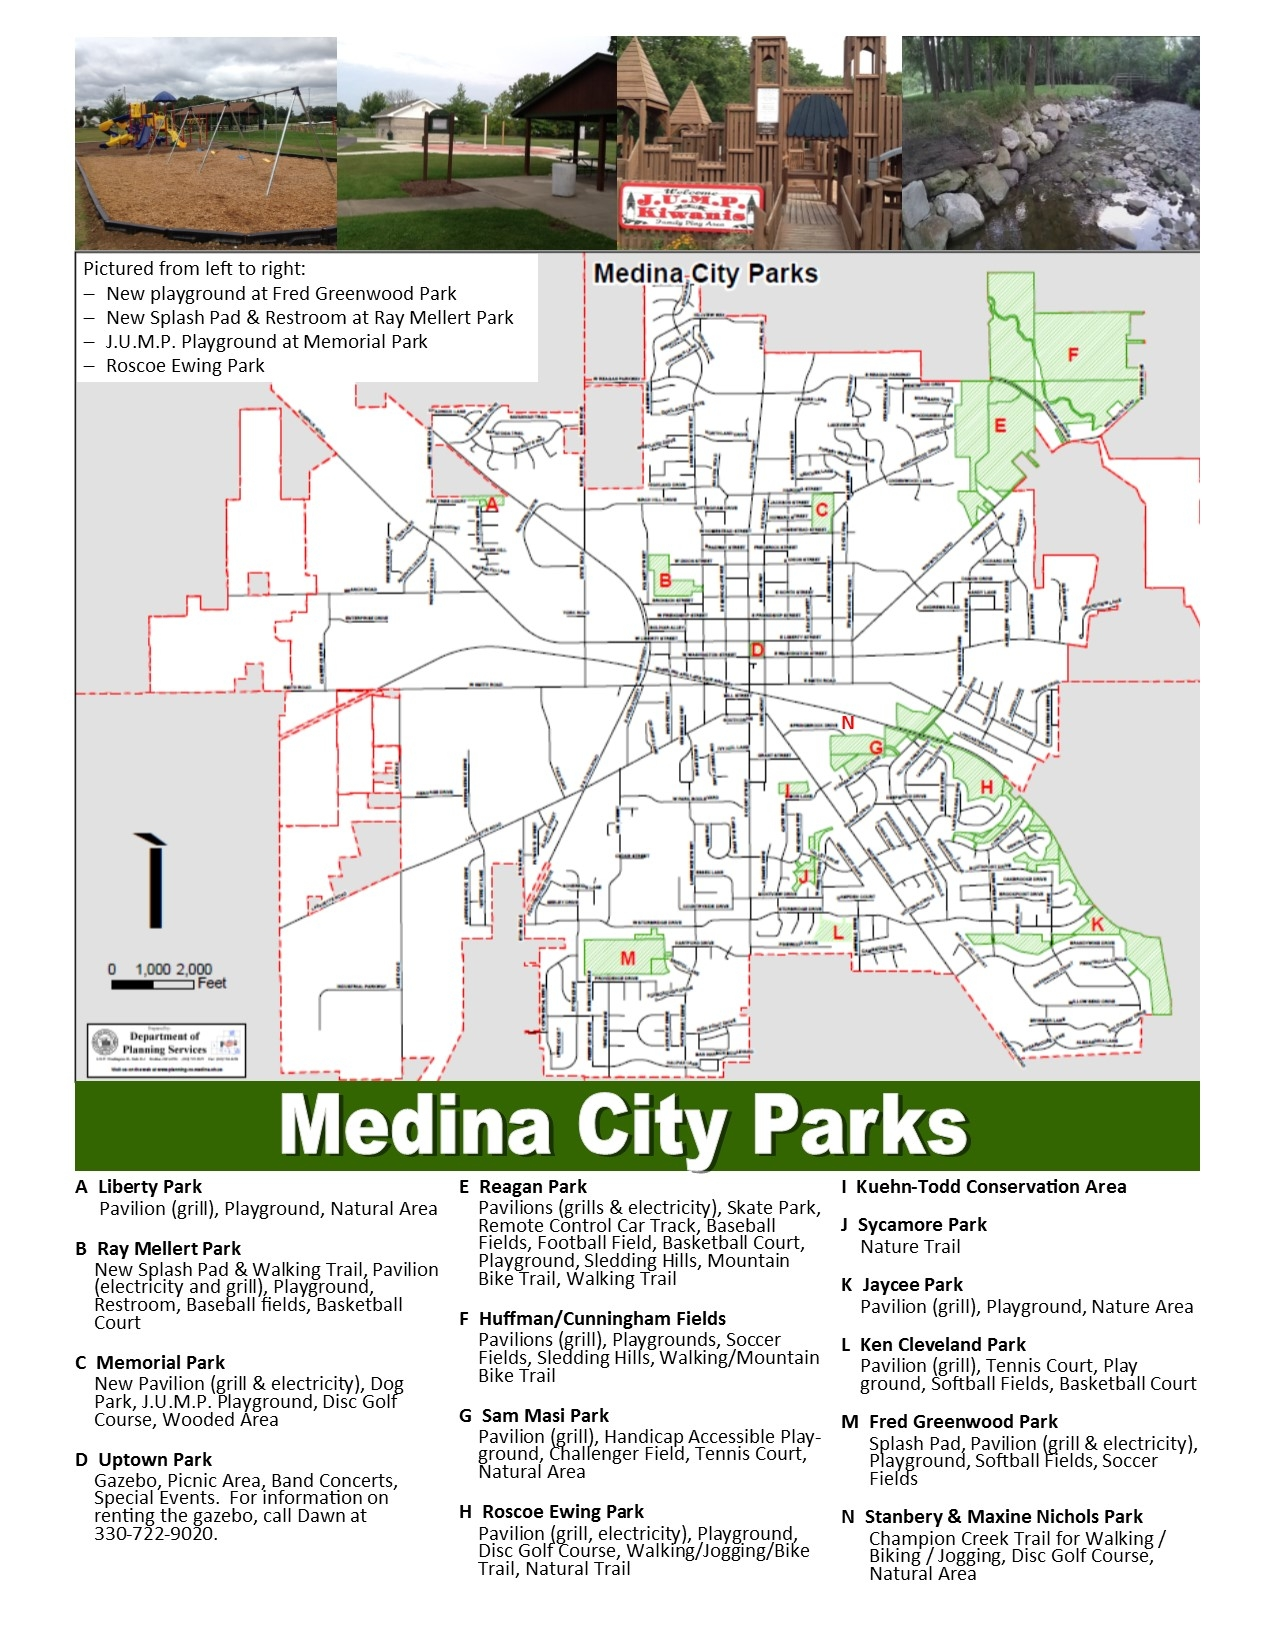 Medina City Parks Map | The City of Medina Ohio